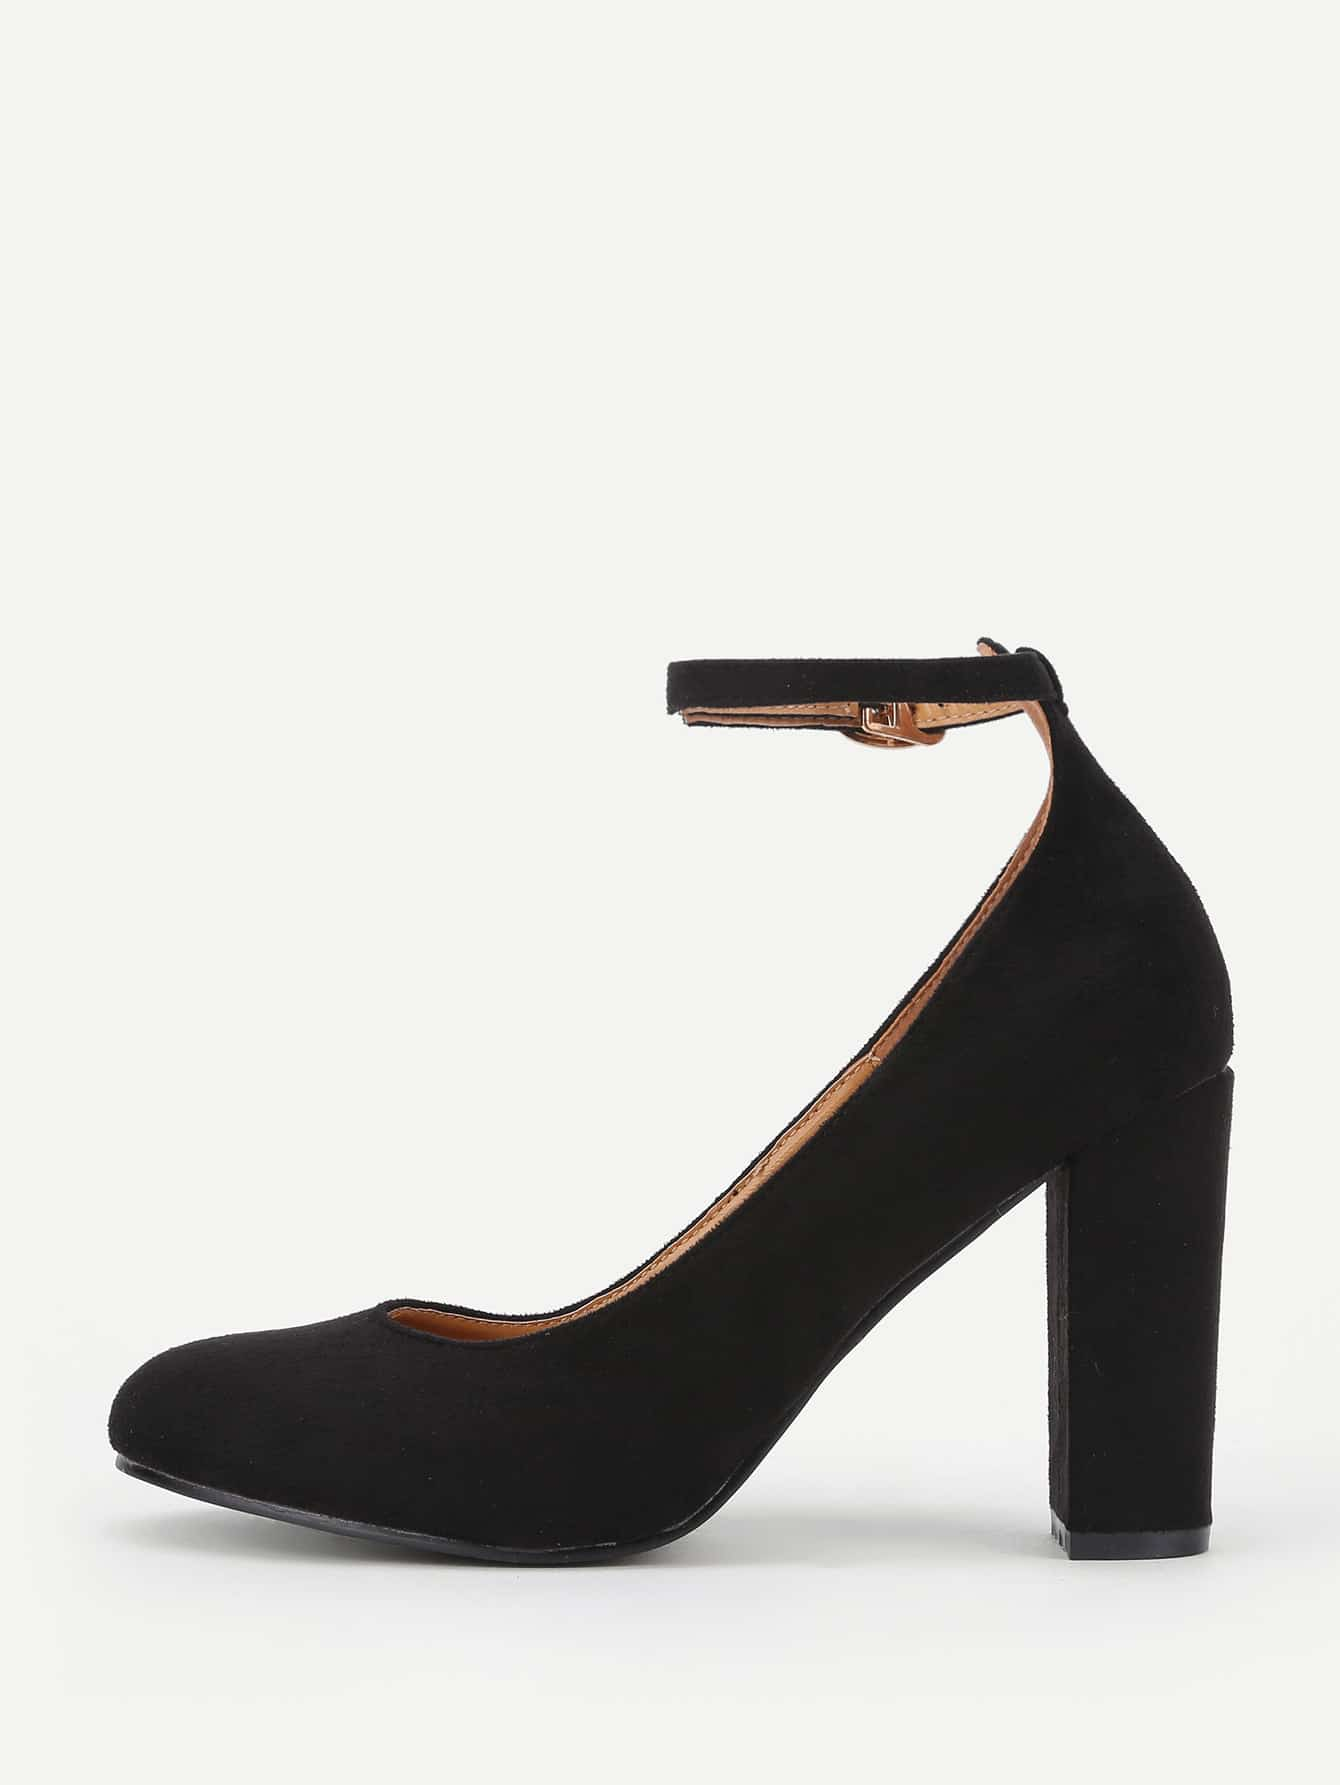 Image of Ankle Strap Block Heeled Shoes